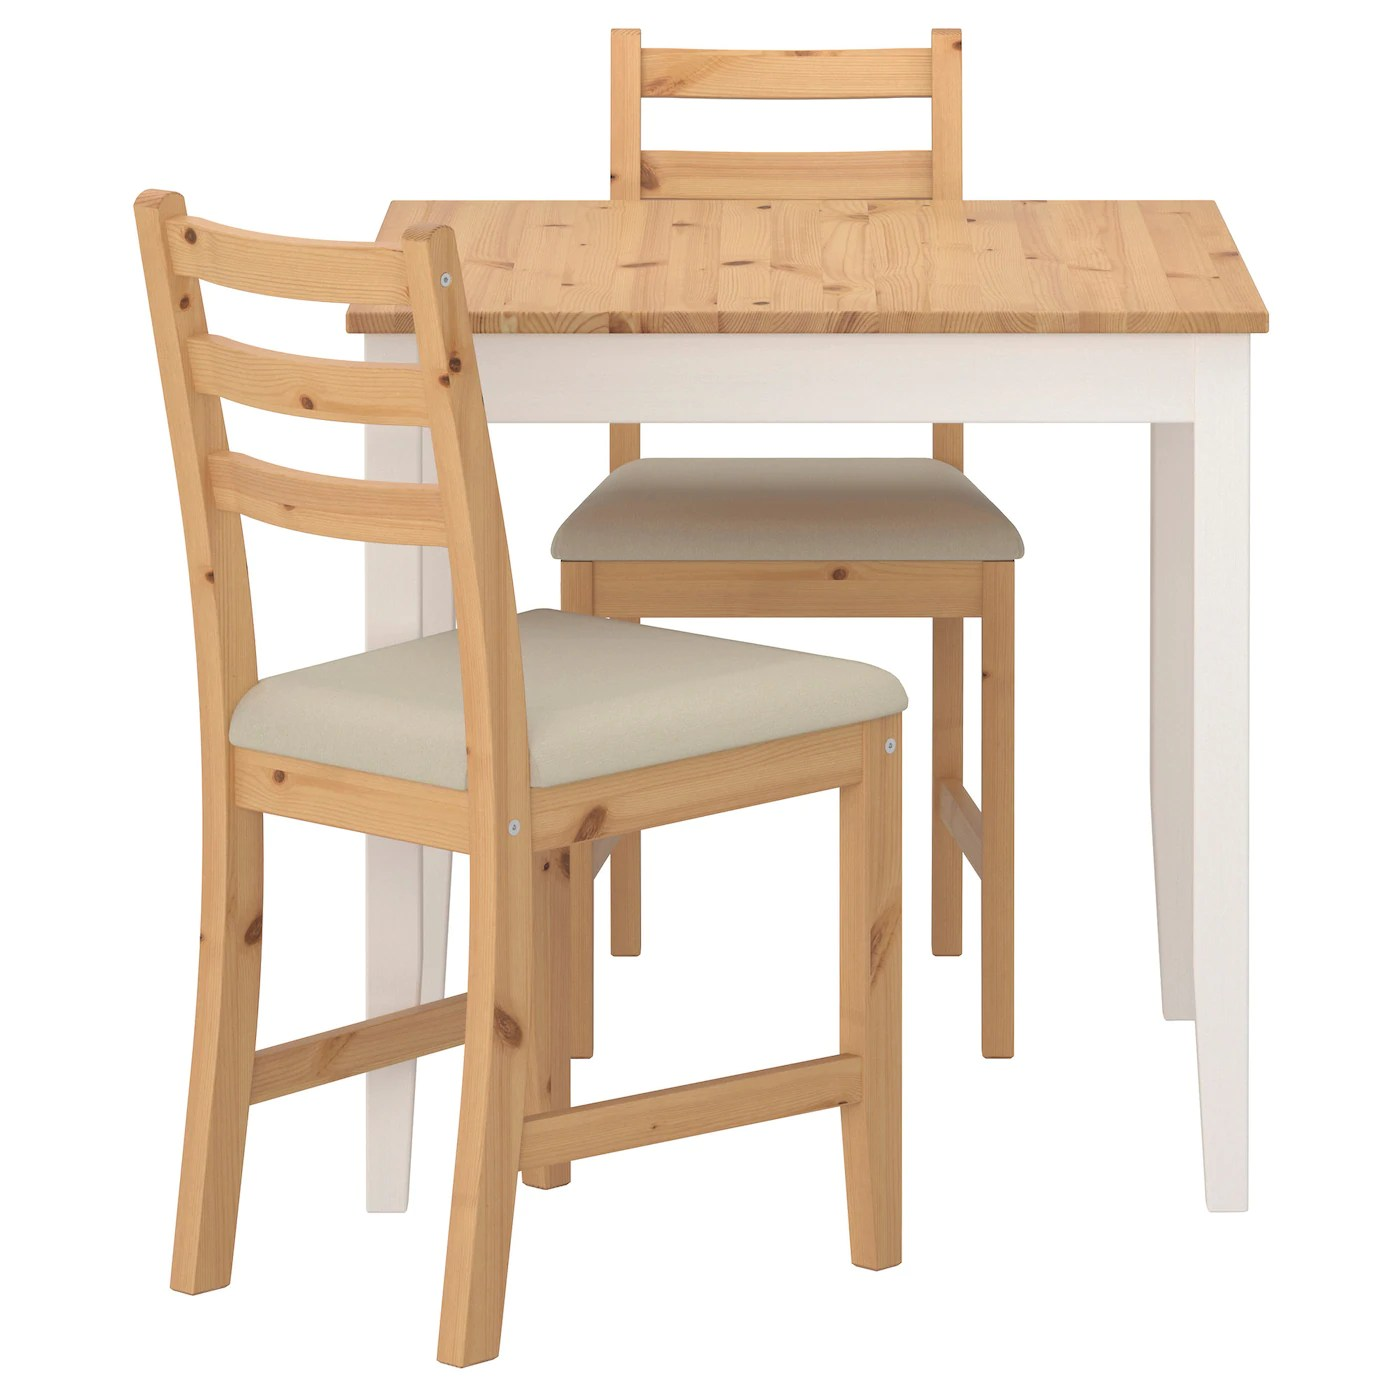 Table With Two Chairs Lerhamn Table And 2 Chairs Light Antique Stain Ramna Beige 74 X 74 Cm Ikea